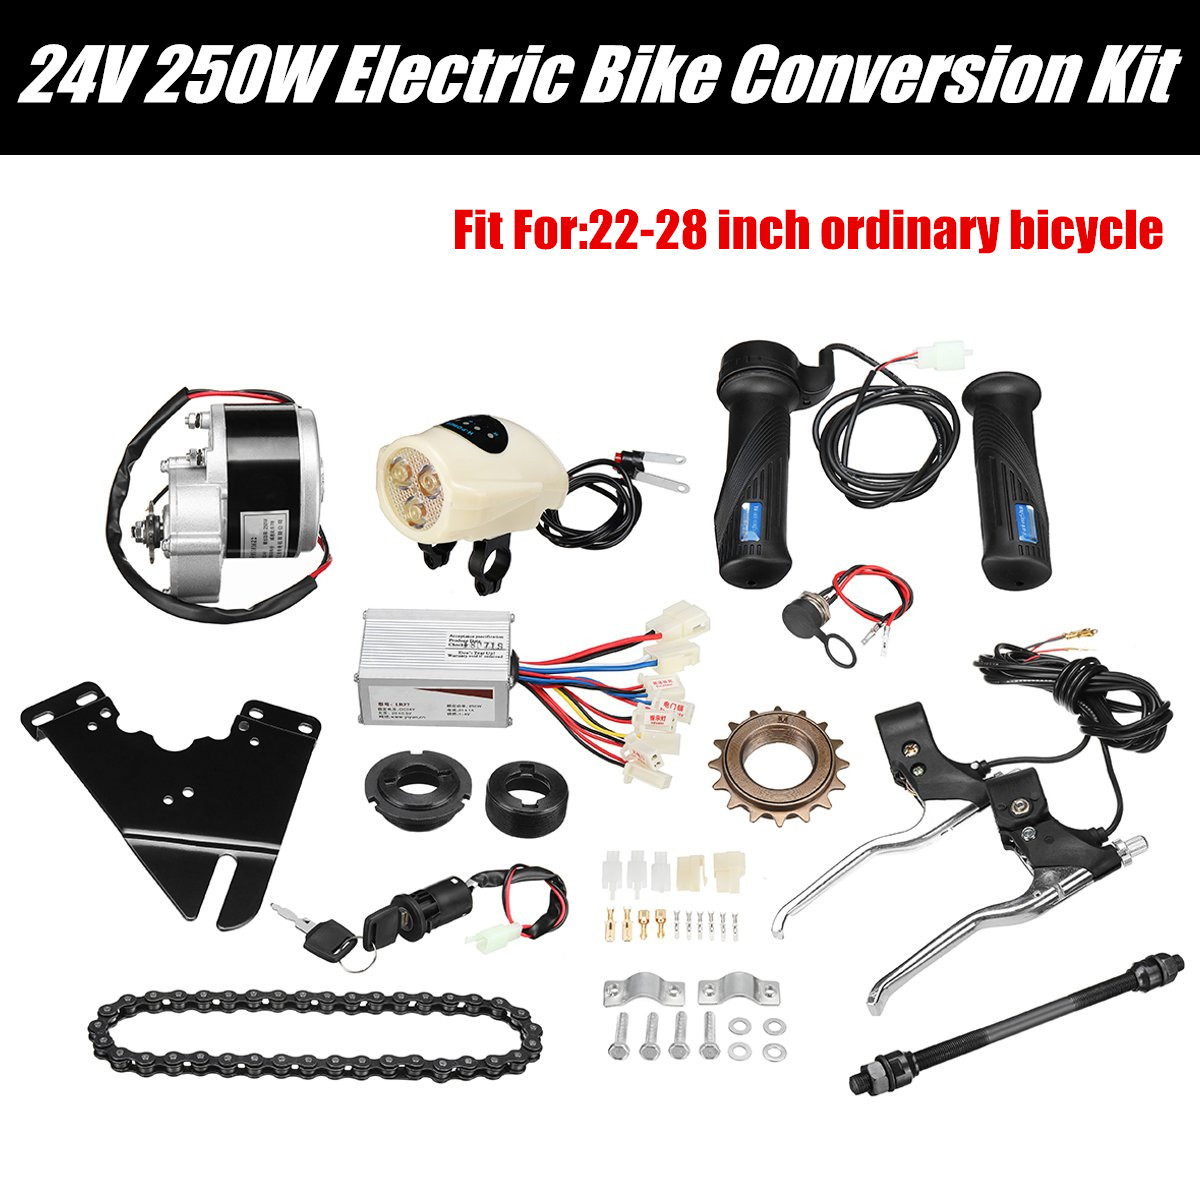 24V 250W Motor Controller Electric Bike Kit Electric Bicycle Conversion Kit for Ordinary Common Electric Bicycle